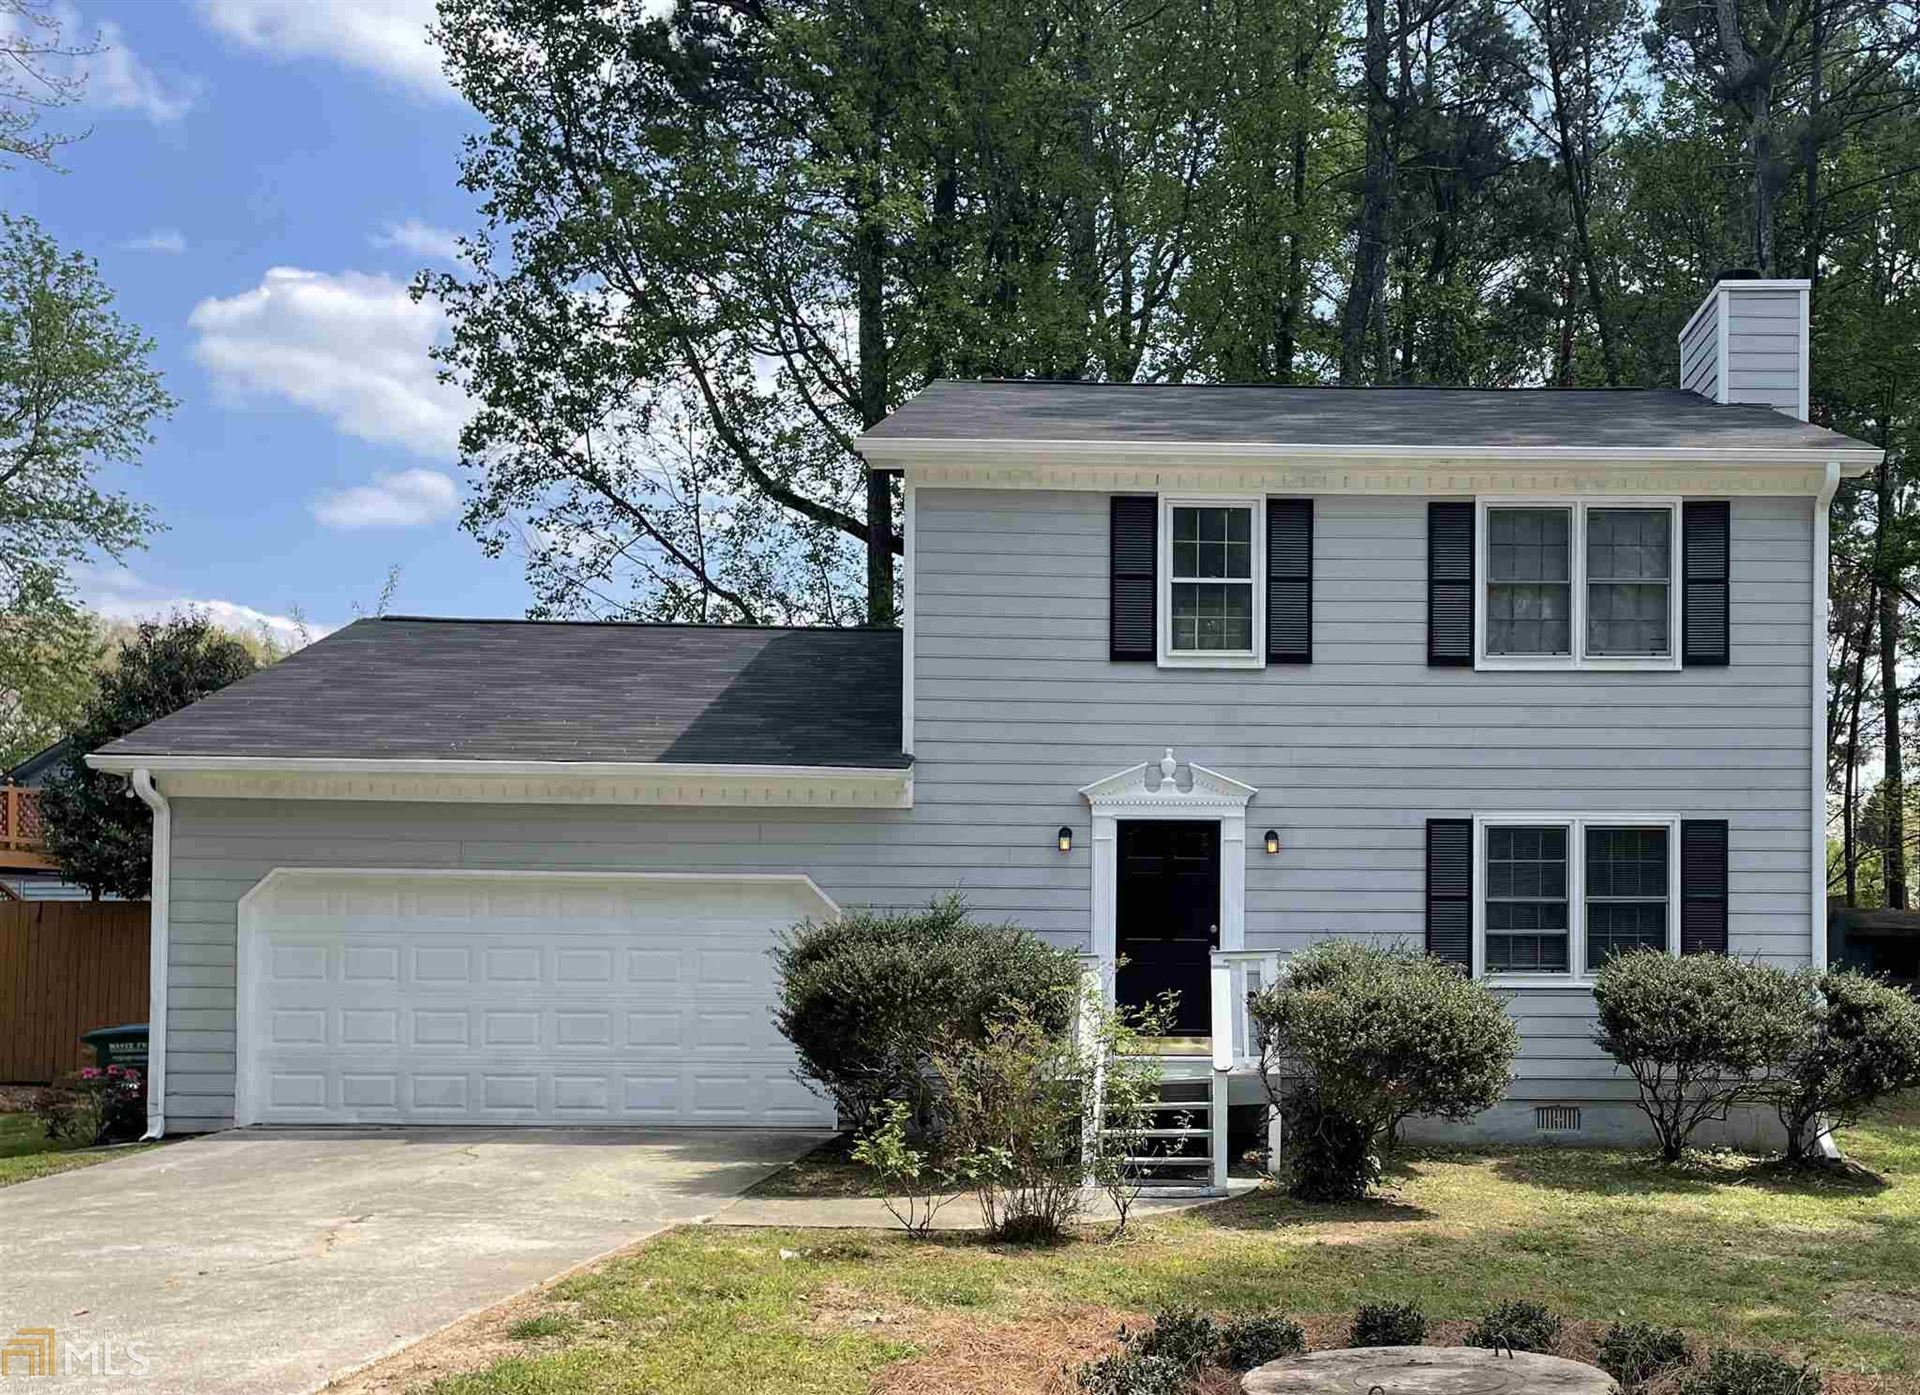 3520 Everson Wood Dr, Snellville, GA 30039 - #: 8955379